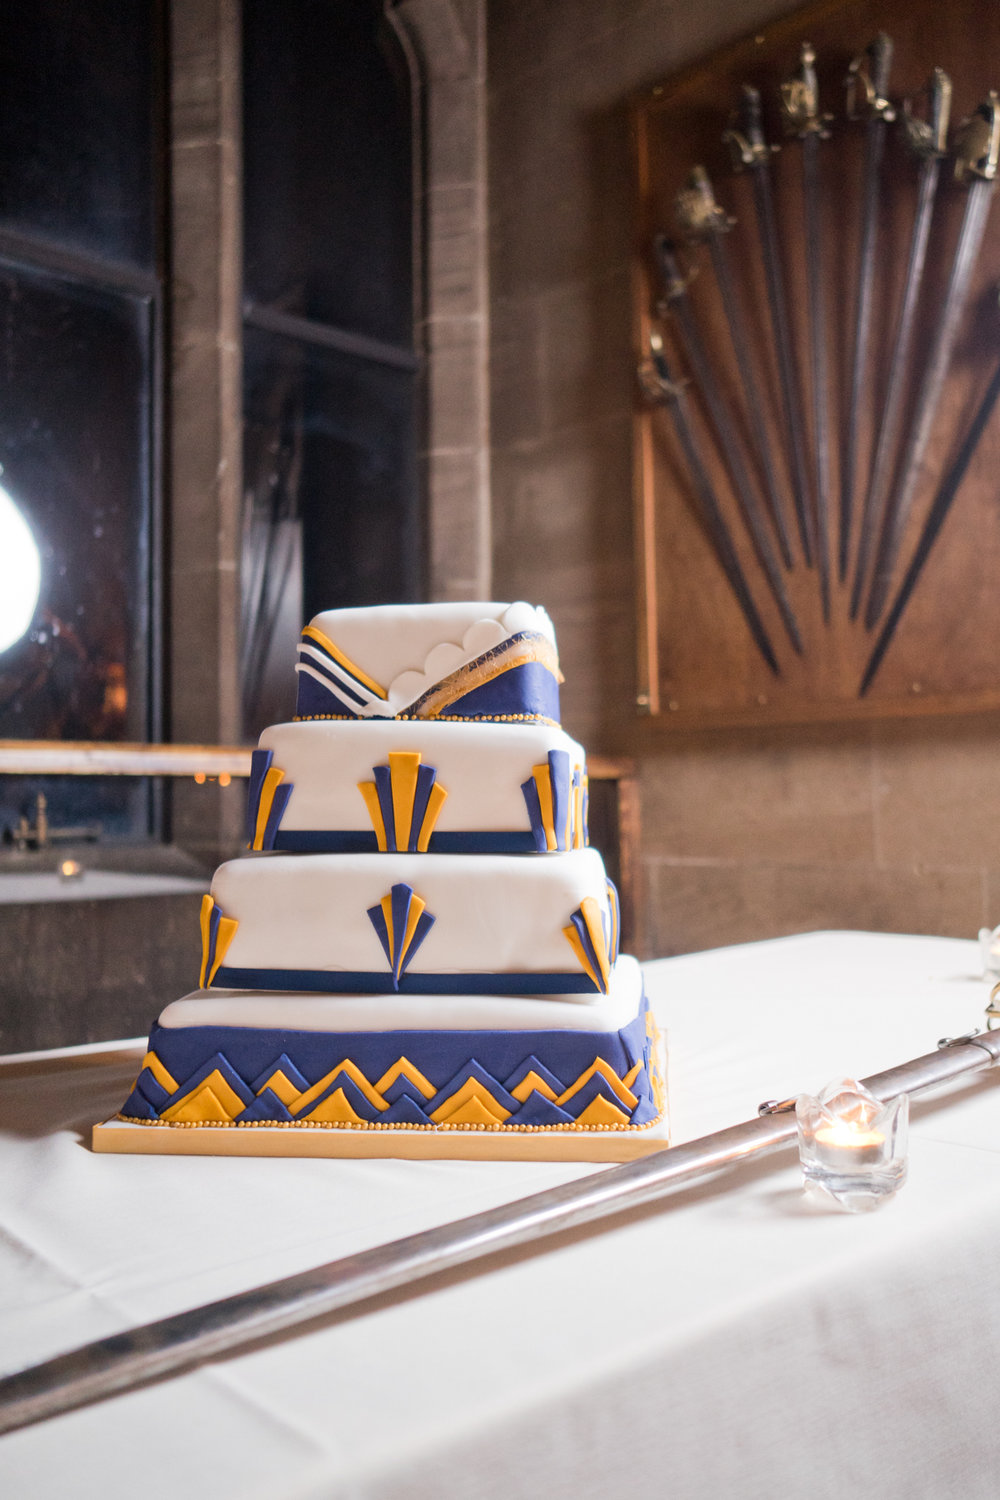 20's wedding cake for this Warwick Castle wedding. Photography by Shot Differently.